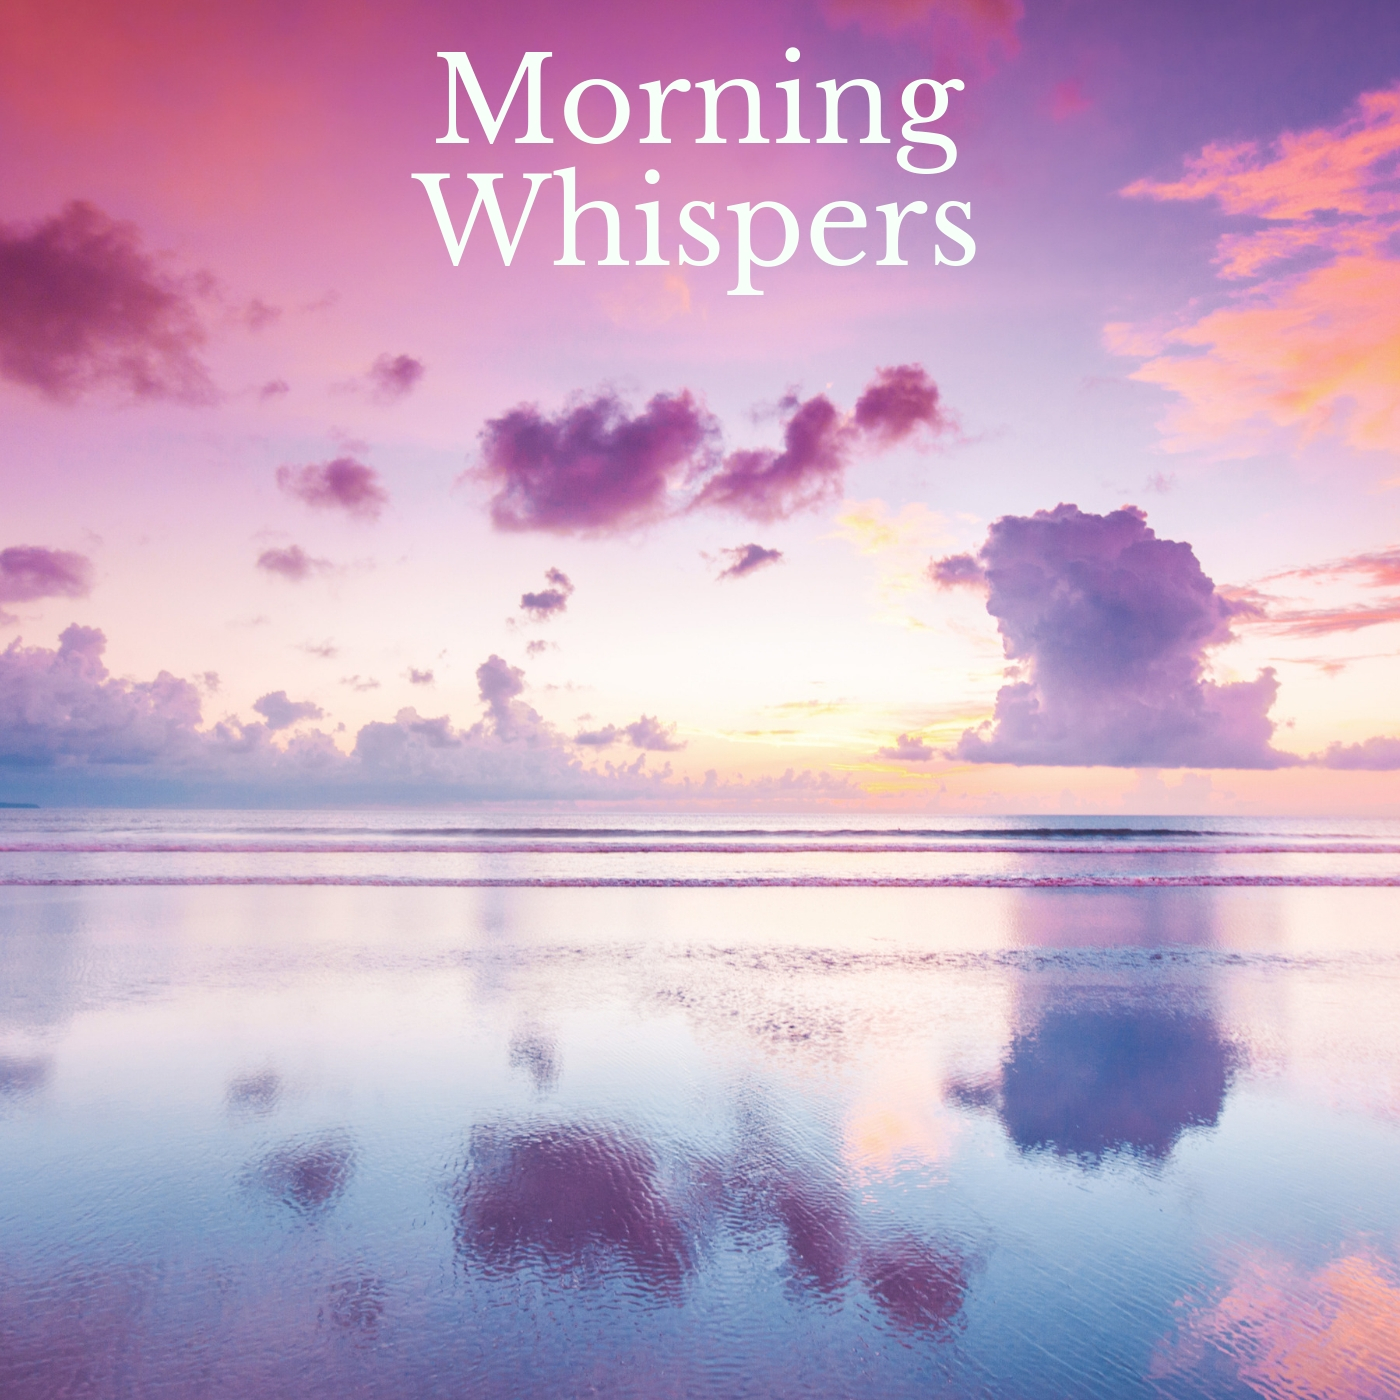 Morning Whispers